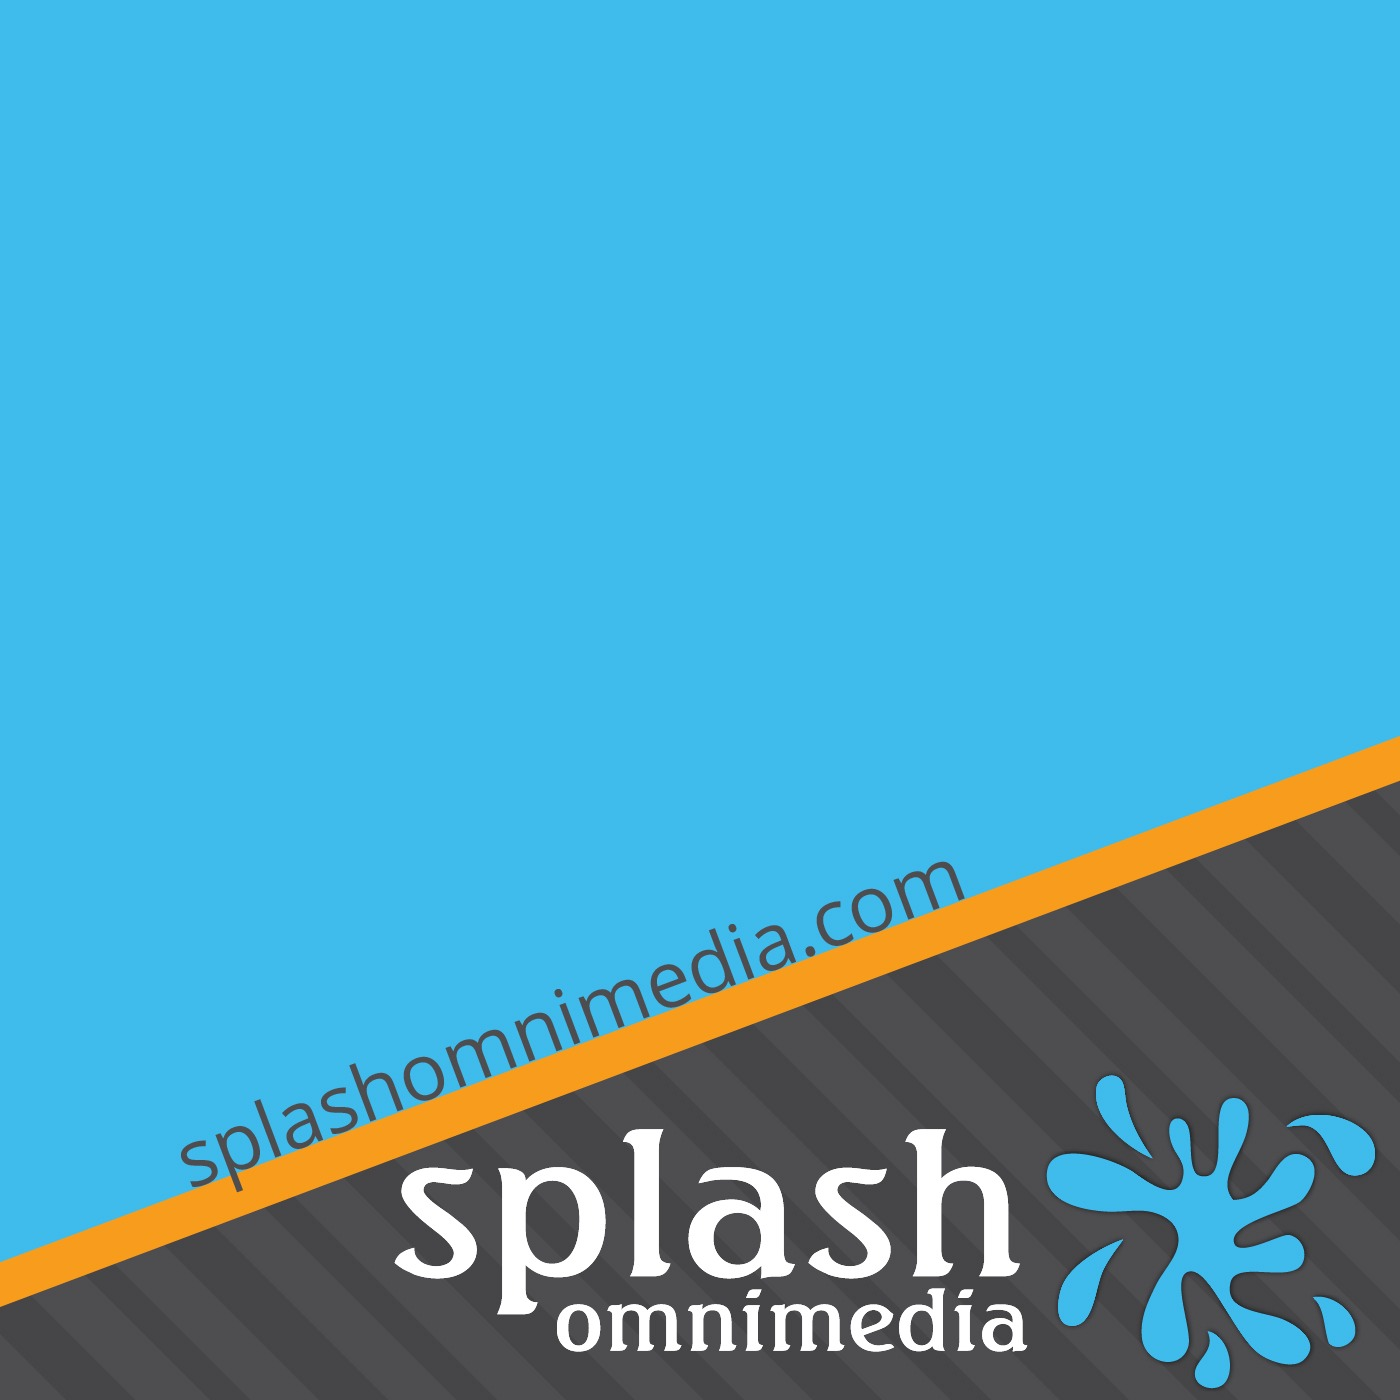 Splash Omnimedia's Test Smoaks onhold Podcast